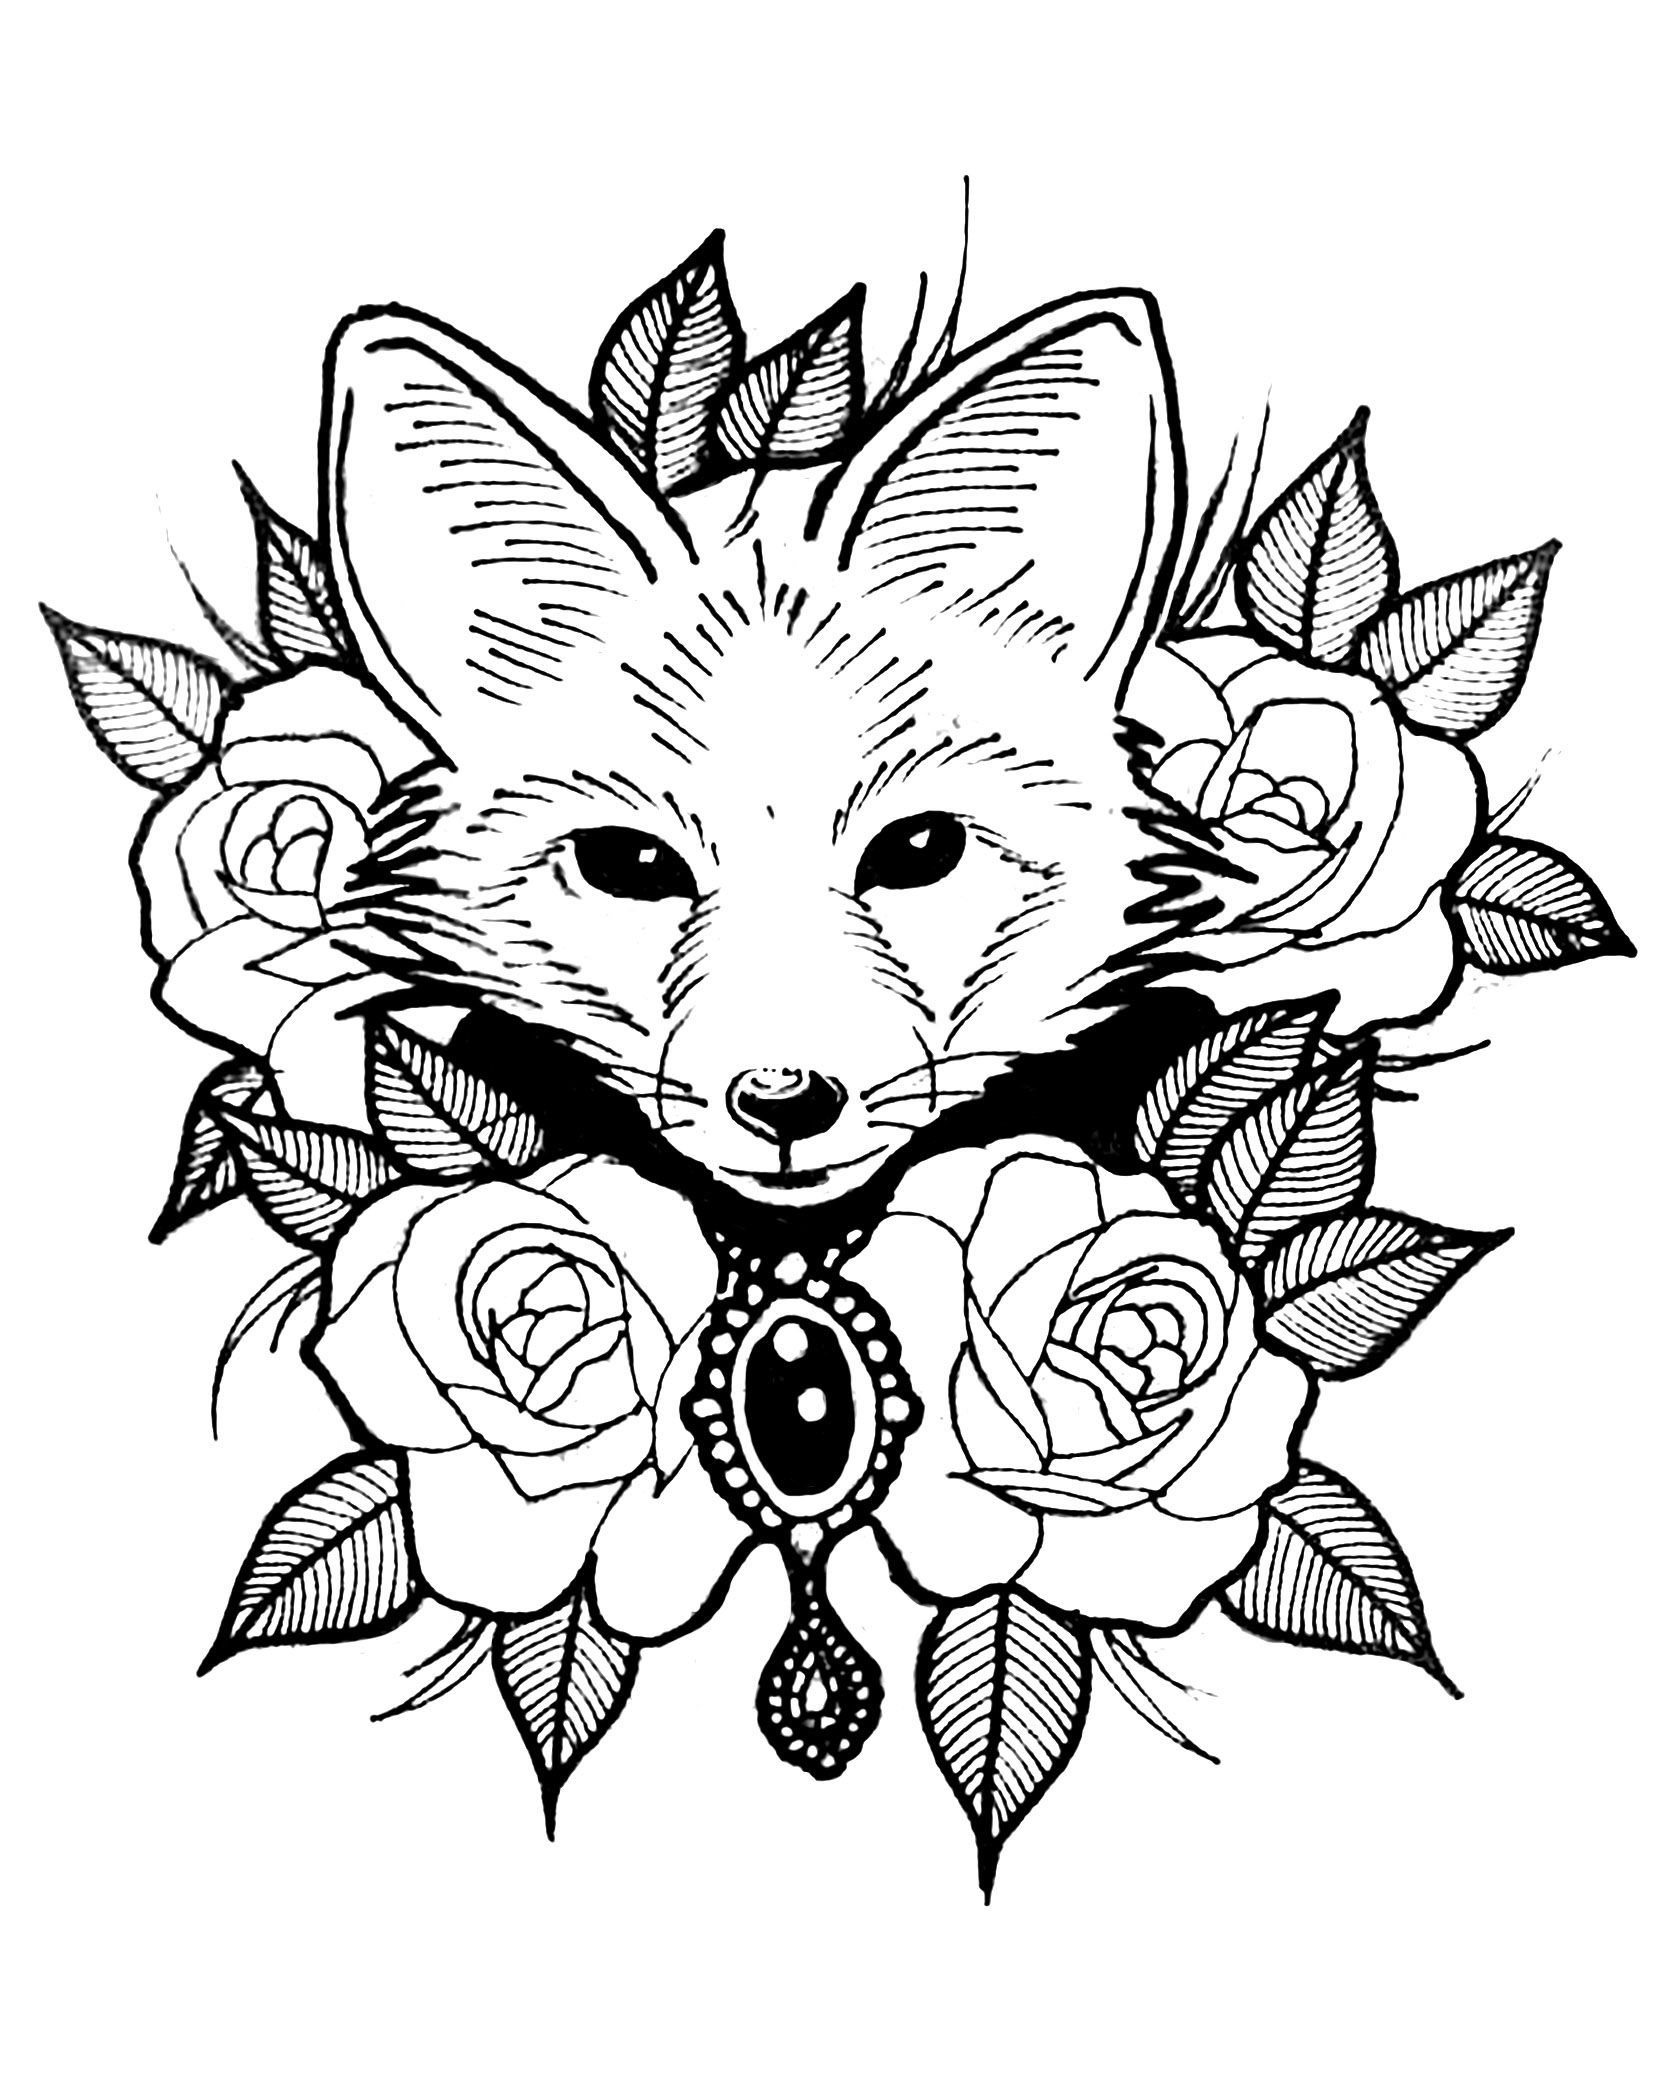 Coloring Page With The Head Of A Fox In A Center Of Roses And Beautiful Leavesfrom The Galler Fox Coloring Page Zoo Animal Coloring Pages Animal Coloring Books